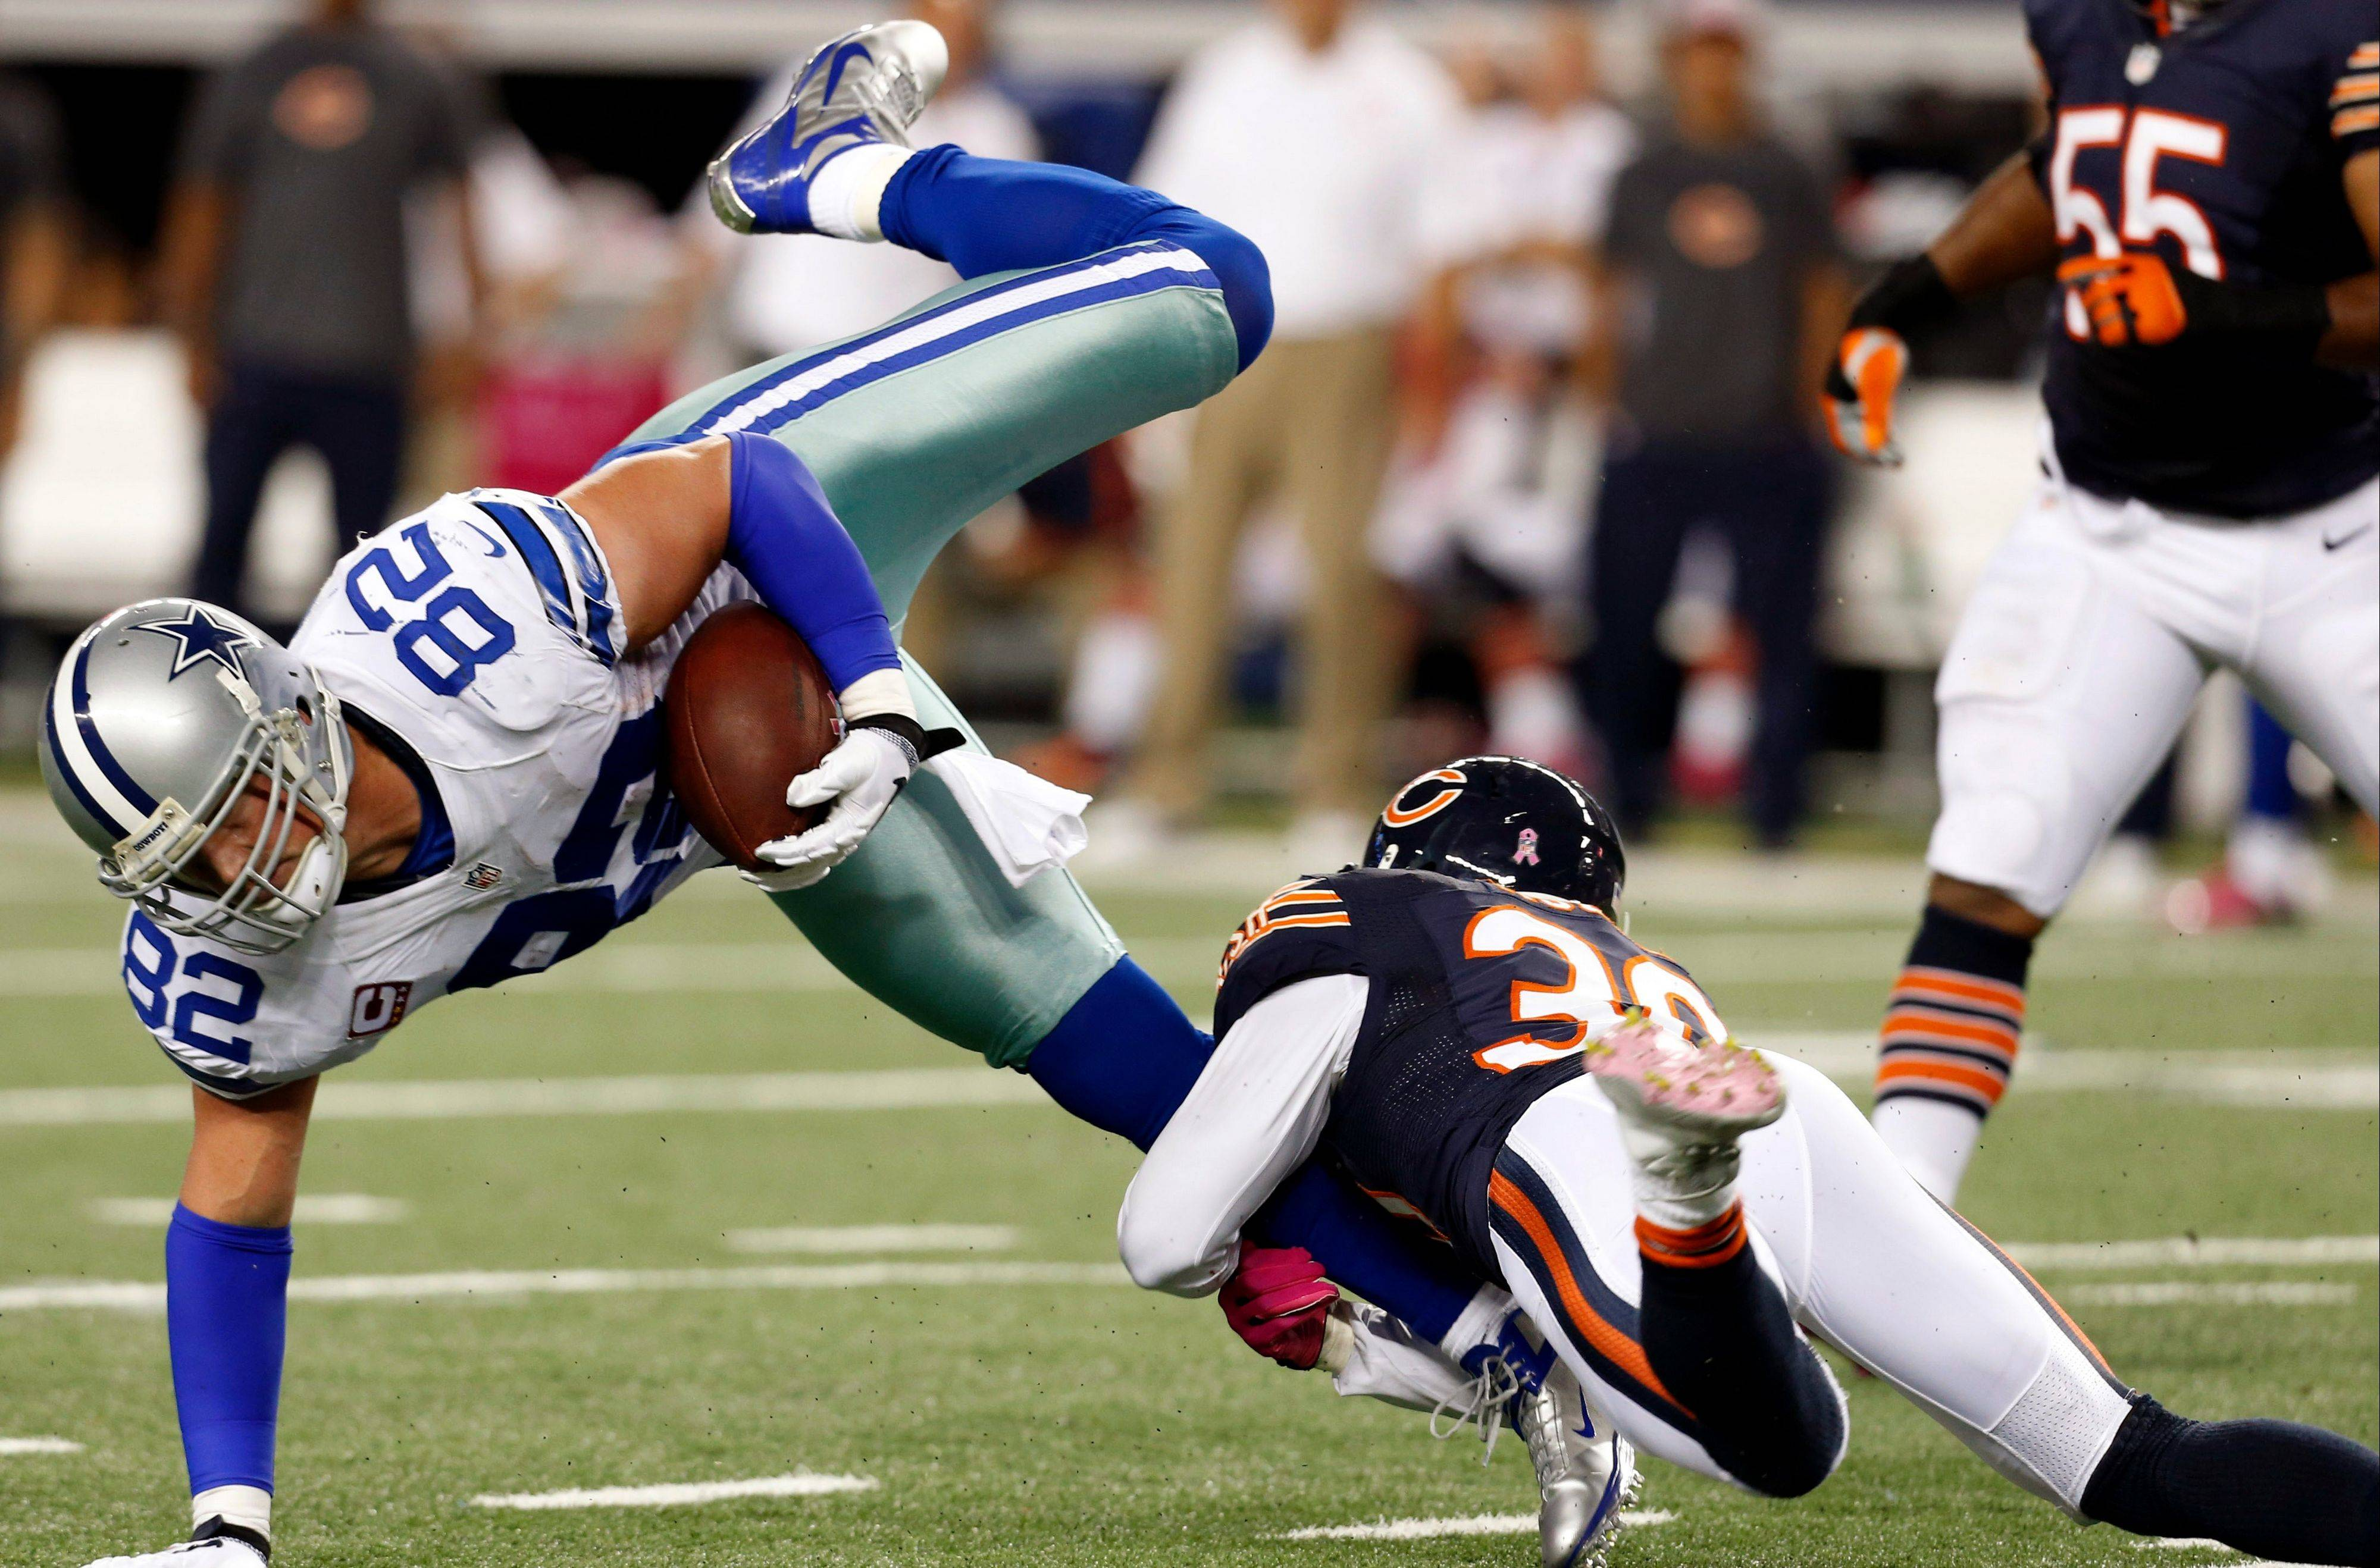 Cornerback D.J. Moore tackles Cowboys tight end Jason Witten in Monday's 34-18 Bears victory. Moore picked off his first pass of the season and finished with 10 tackles.